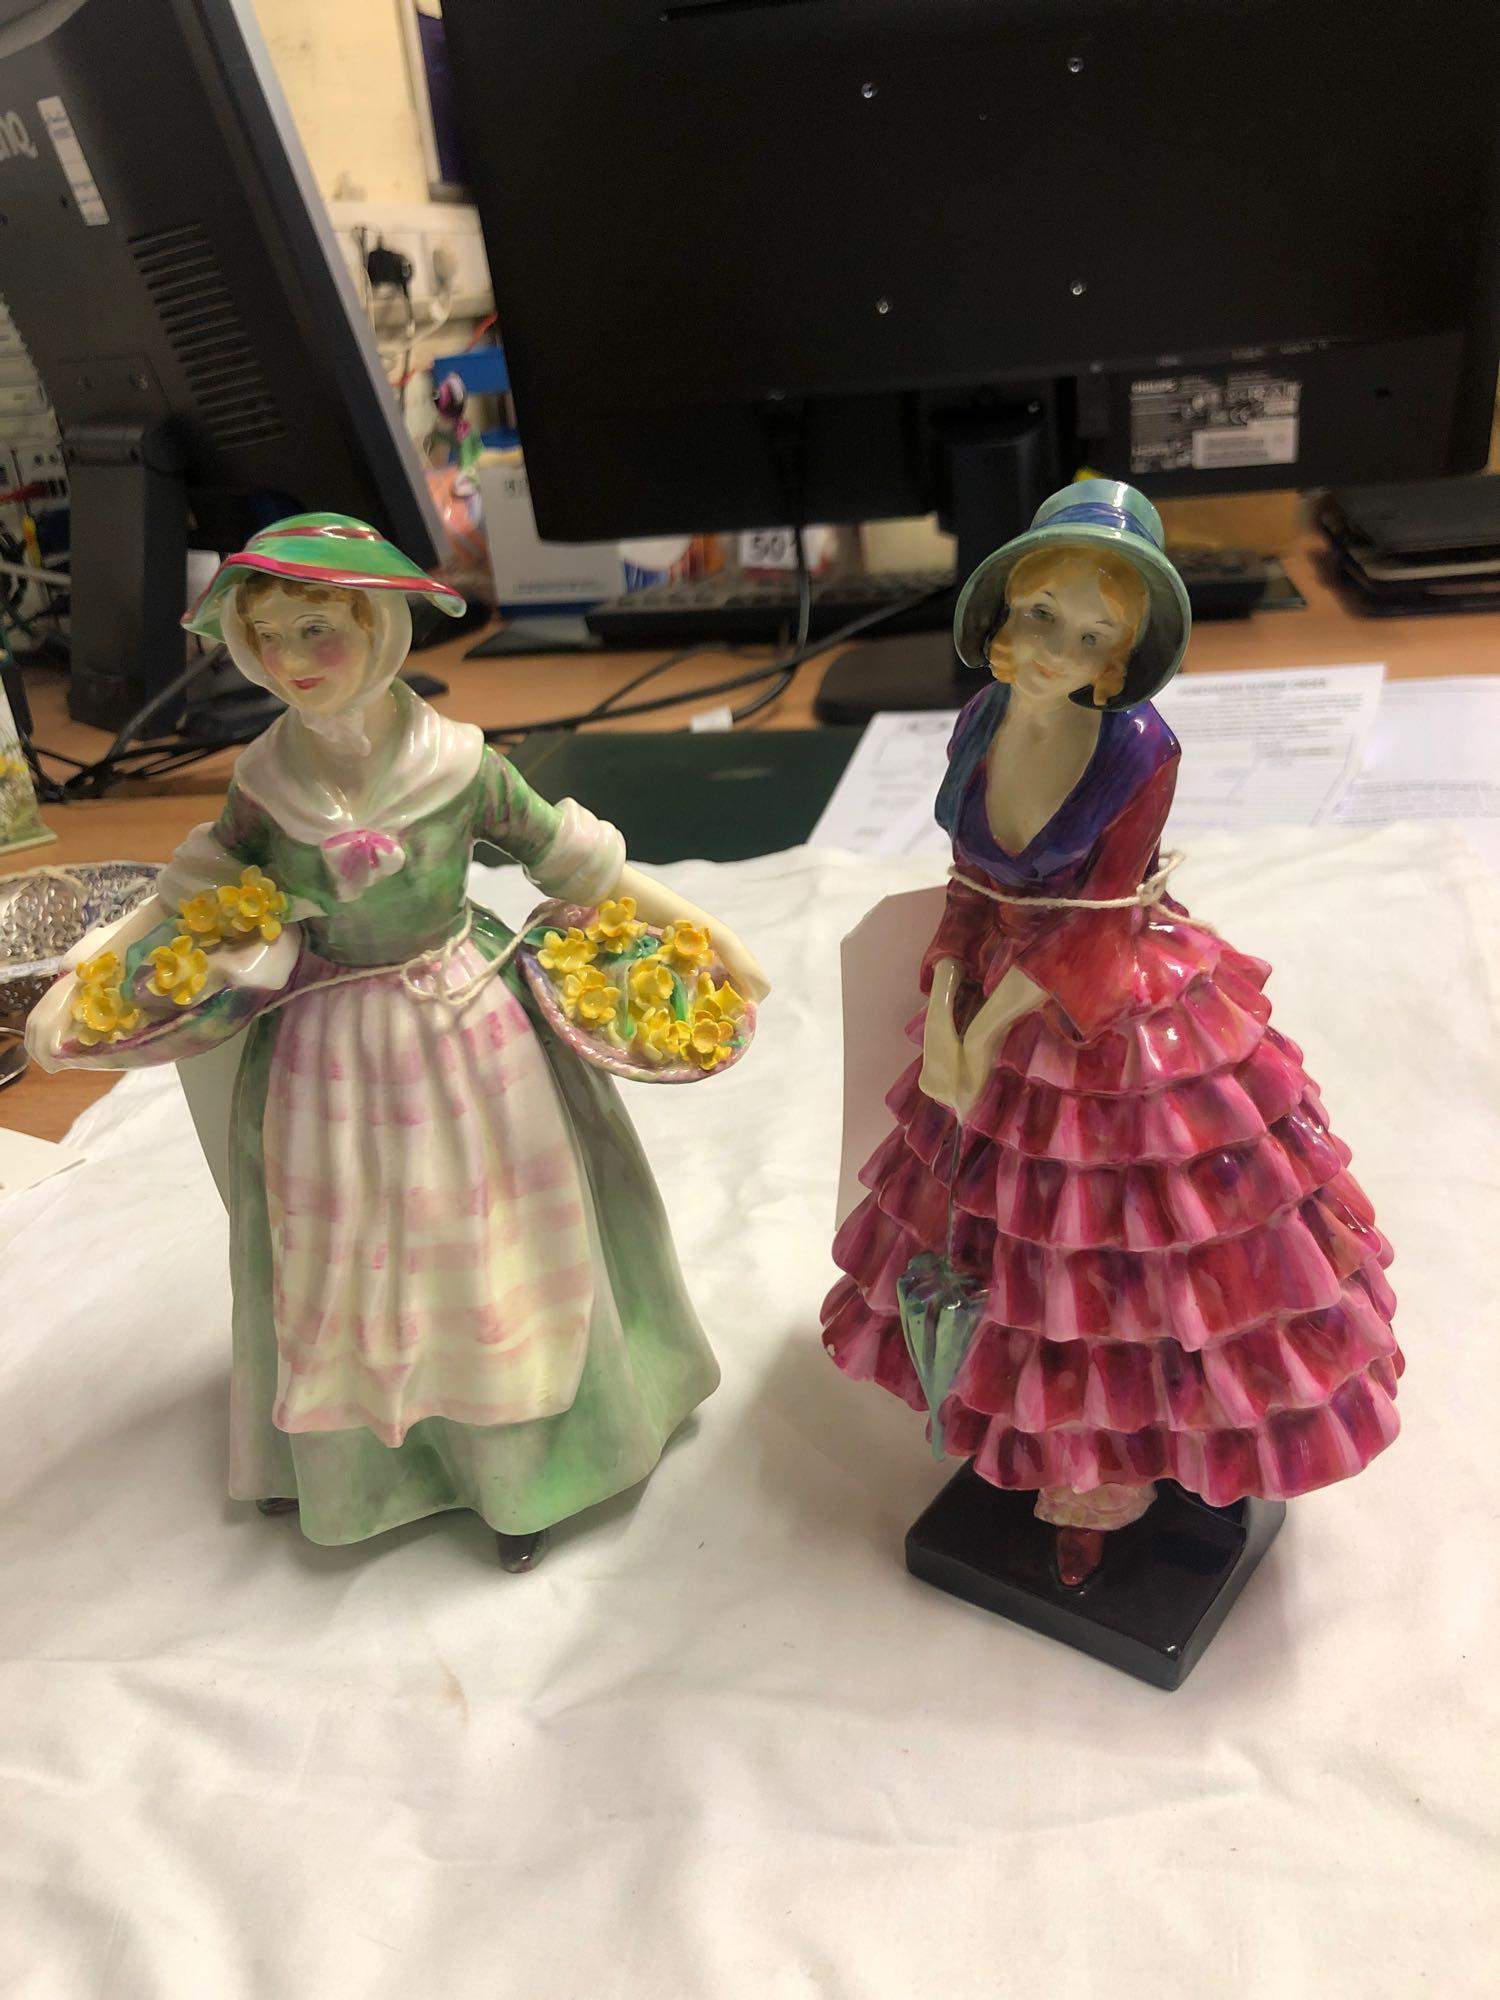 2 ROYAL DOULTON FIGURES- DAFFY DOWN DILLY & PRISCILLA